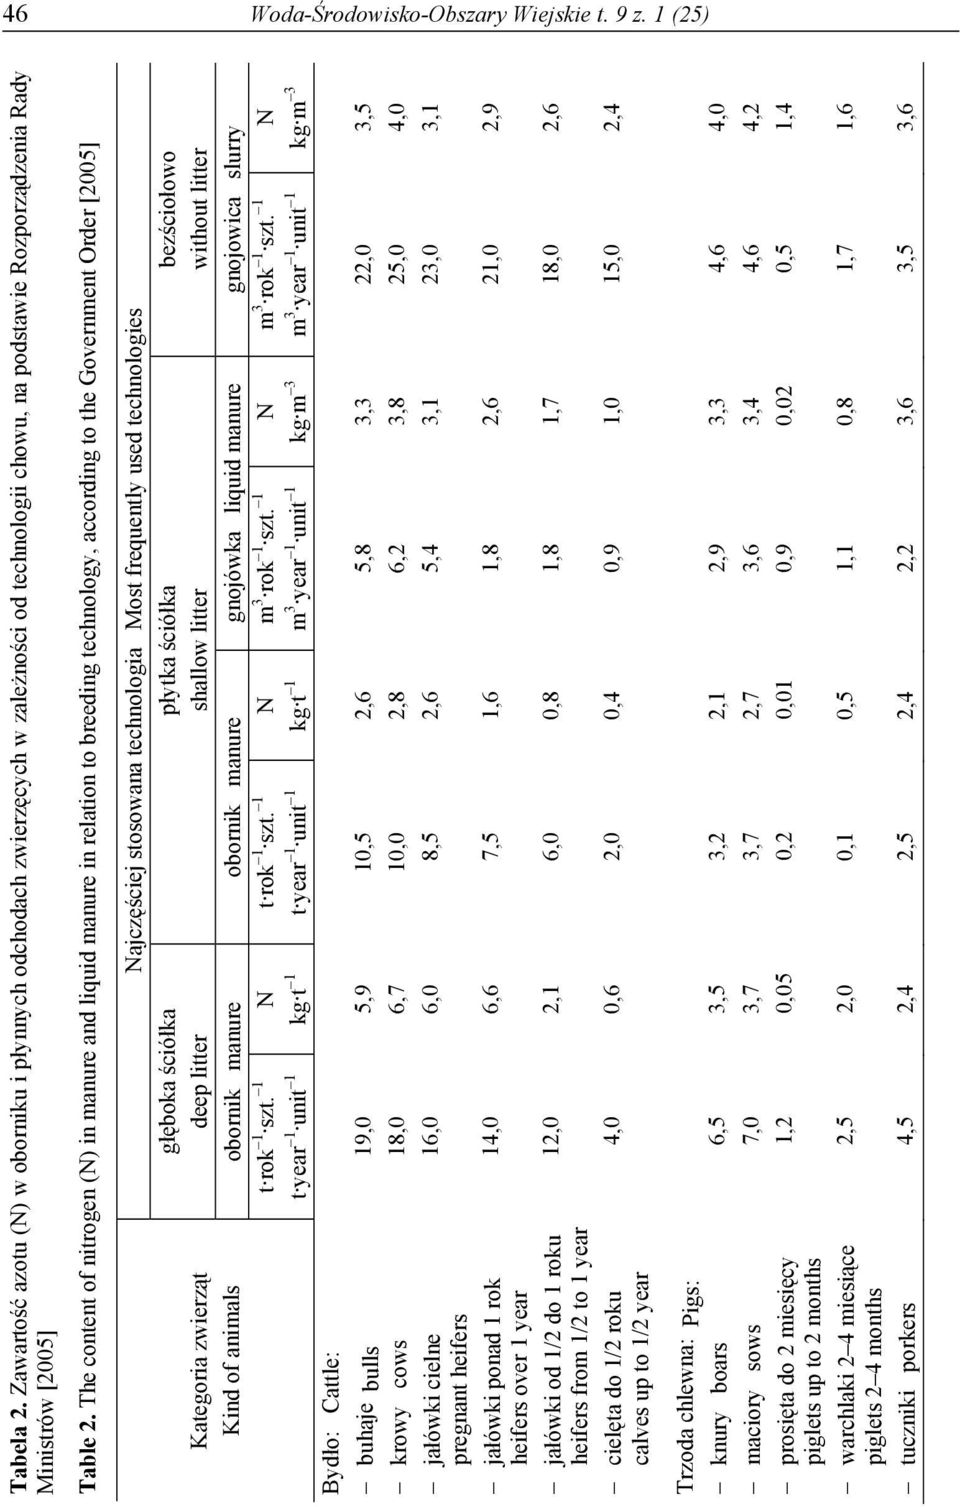 The content of nitrogen (N) in manure and liquid manure in relation to breeding technology, according to the Government Order [2005] Kategoria zwierząt Kind of animals głęboka ściółka deep litter